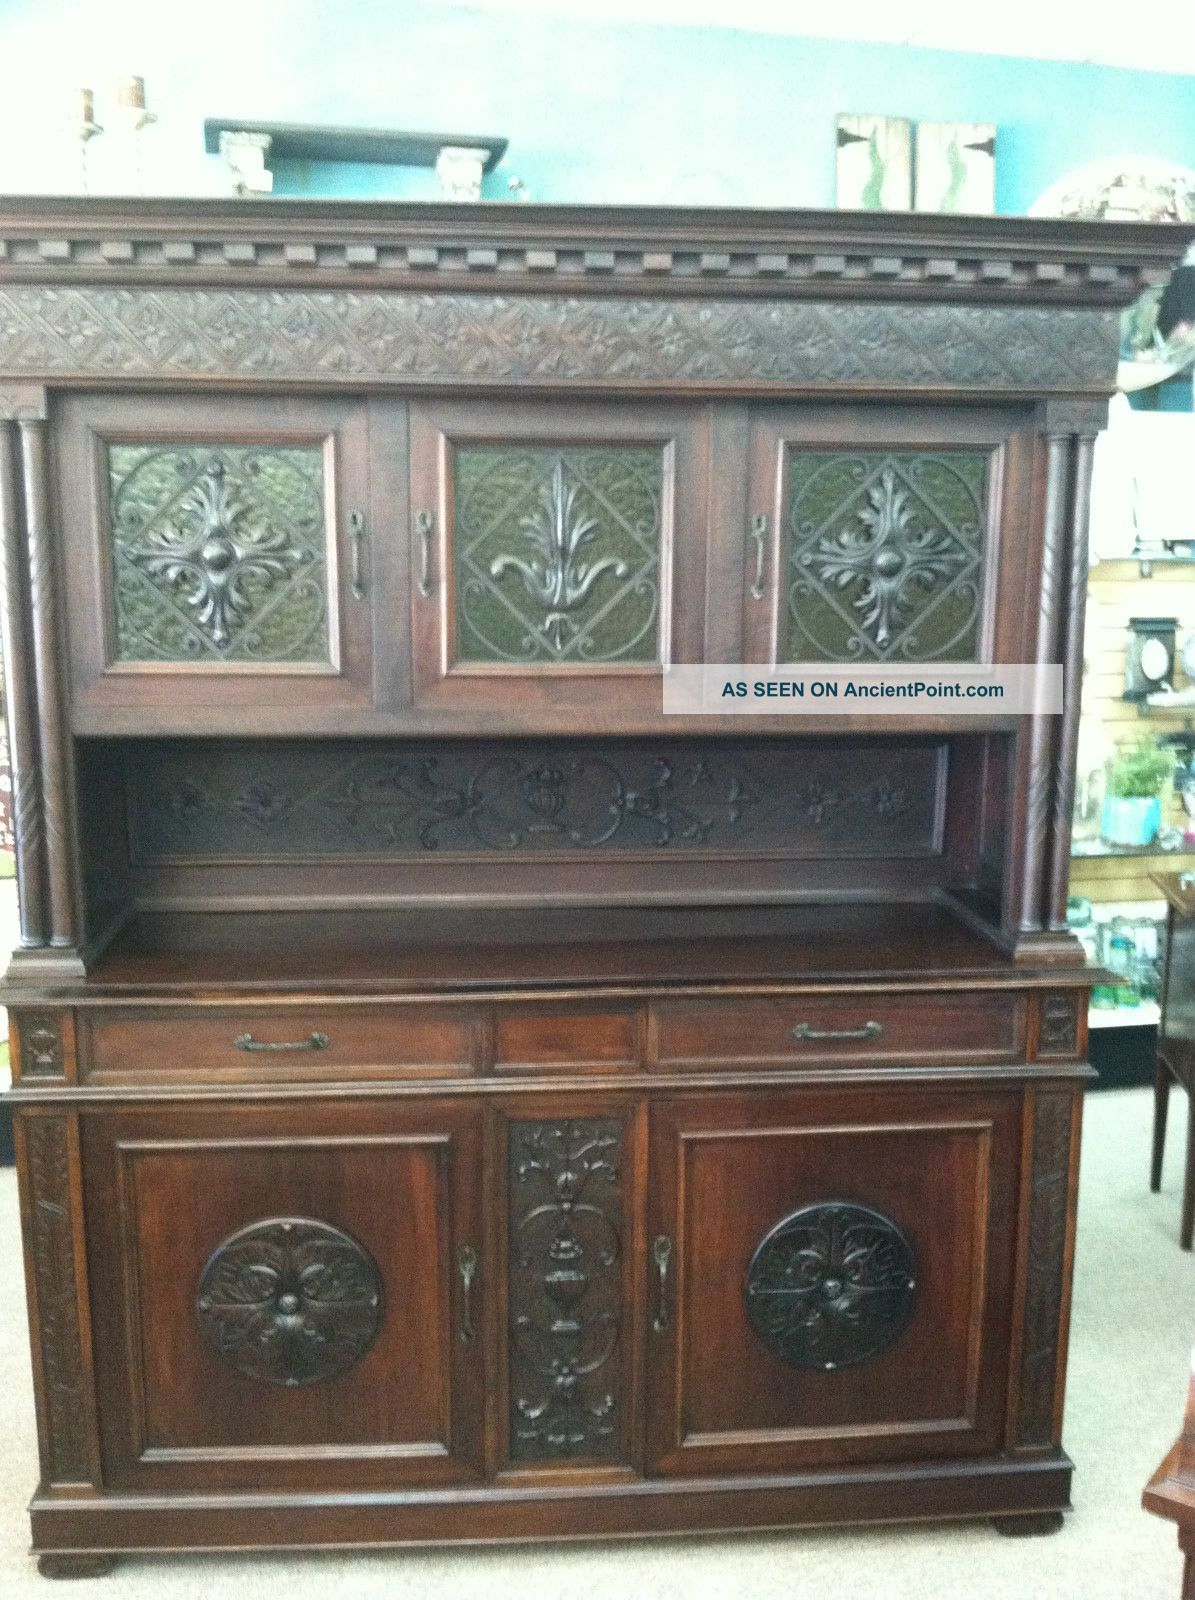 Gorgeous Antique Italian Renaissance Buffet With Carved Medallions Circa 1880 1800-1899 photo